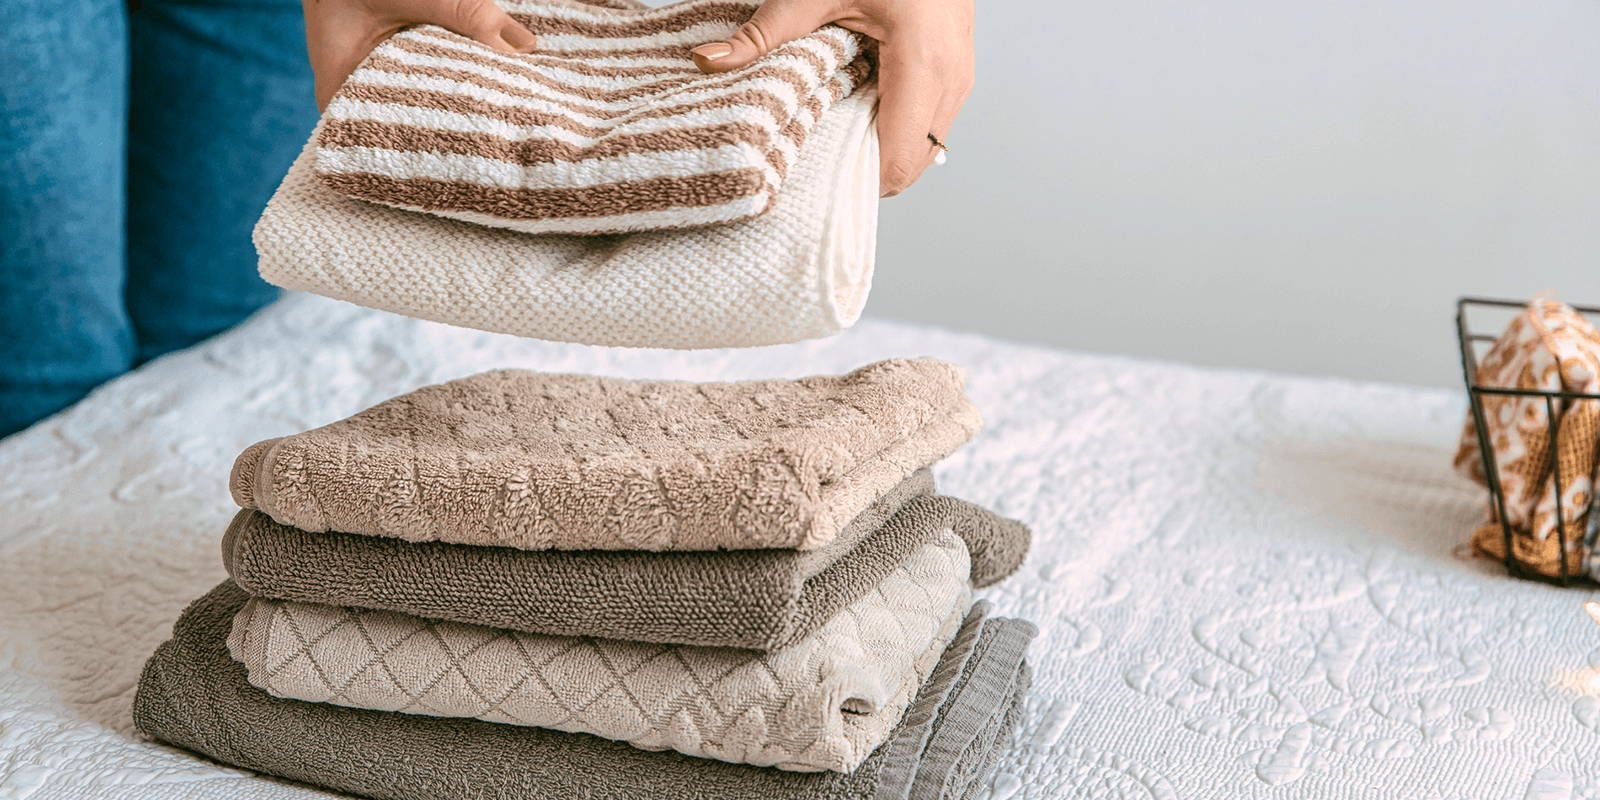 Hands setting folded towels on bed.